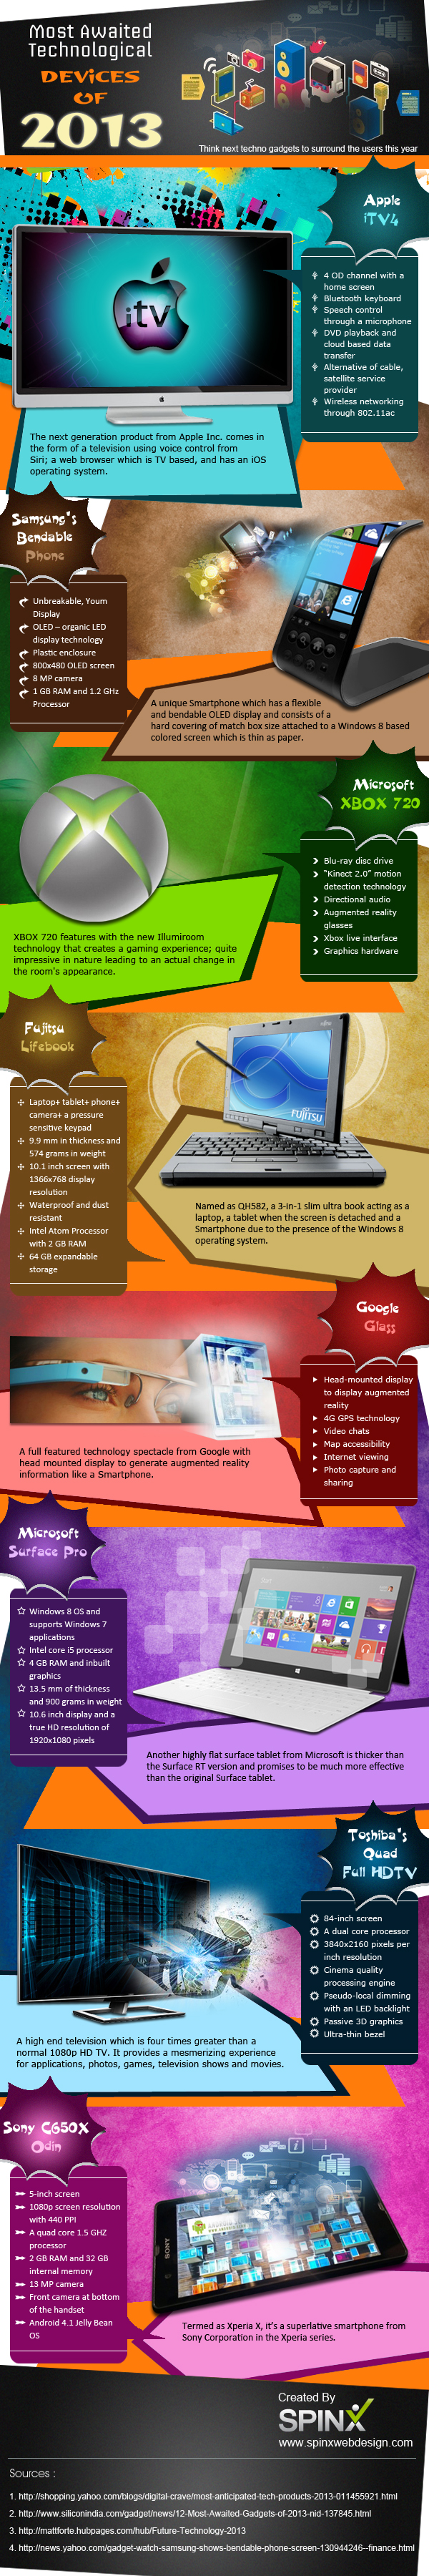 Most-Awaited-Technological-Devices-of-2013